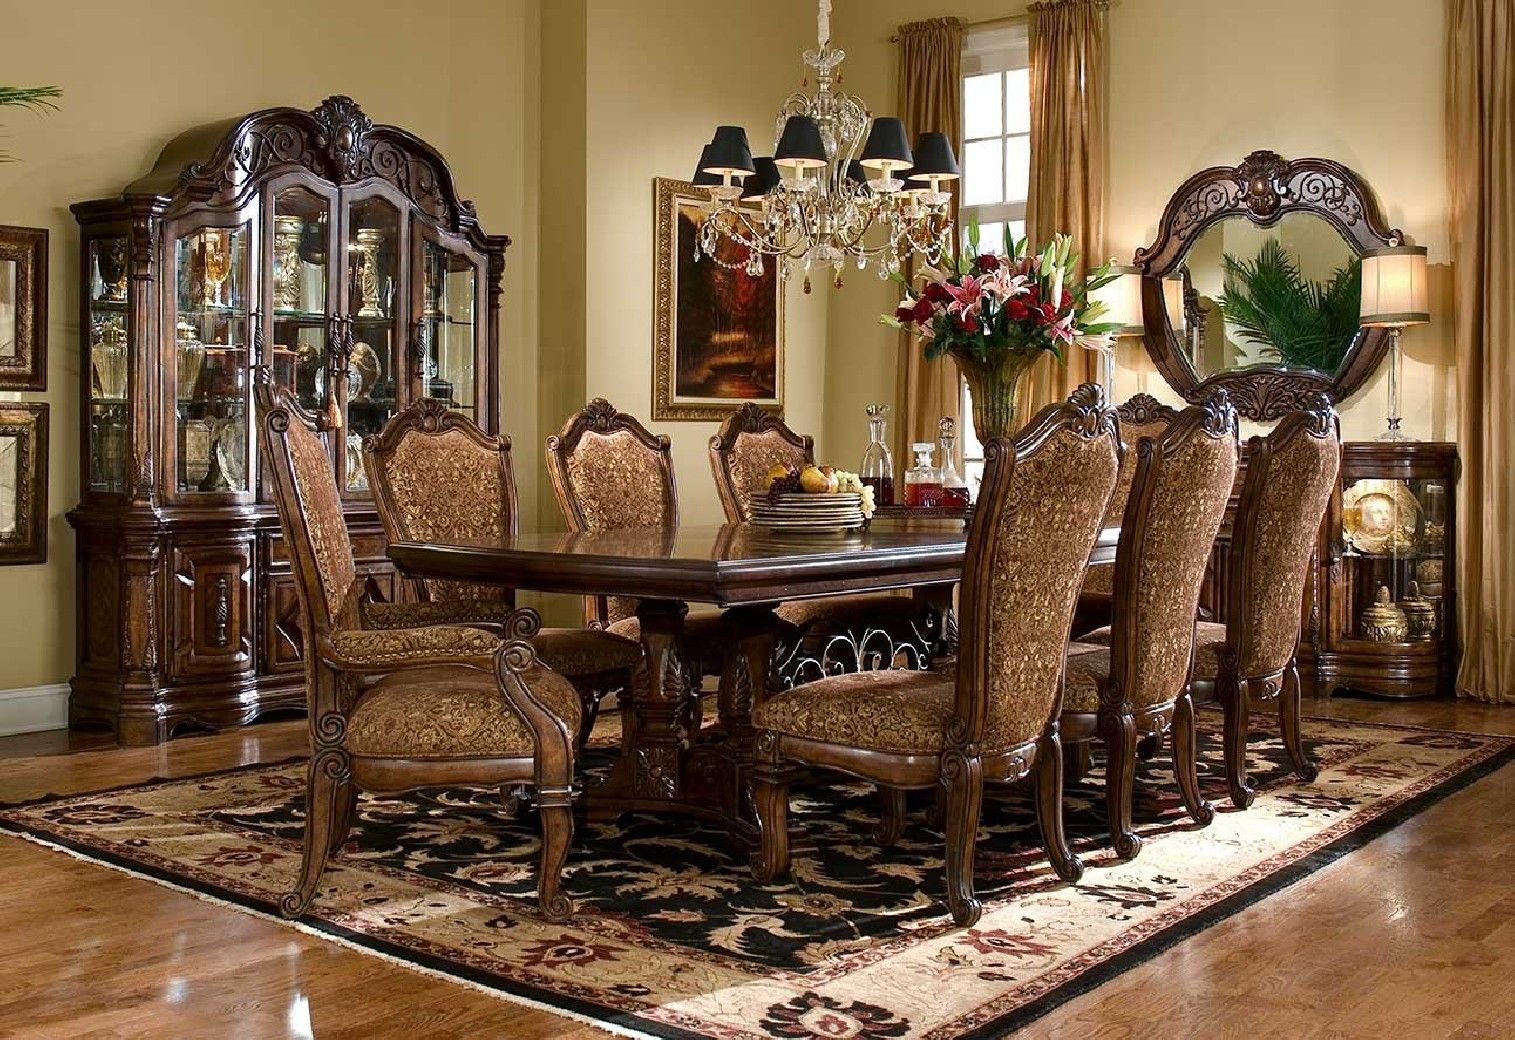 Pin By Nancy Colp On Furniture Tuscan Decorating Beautiful